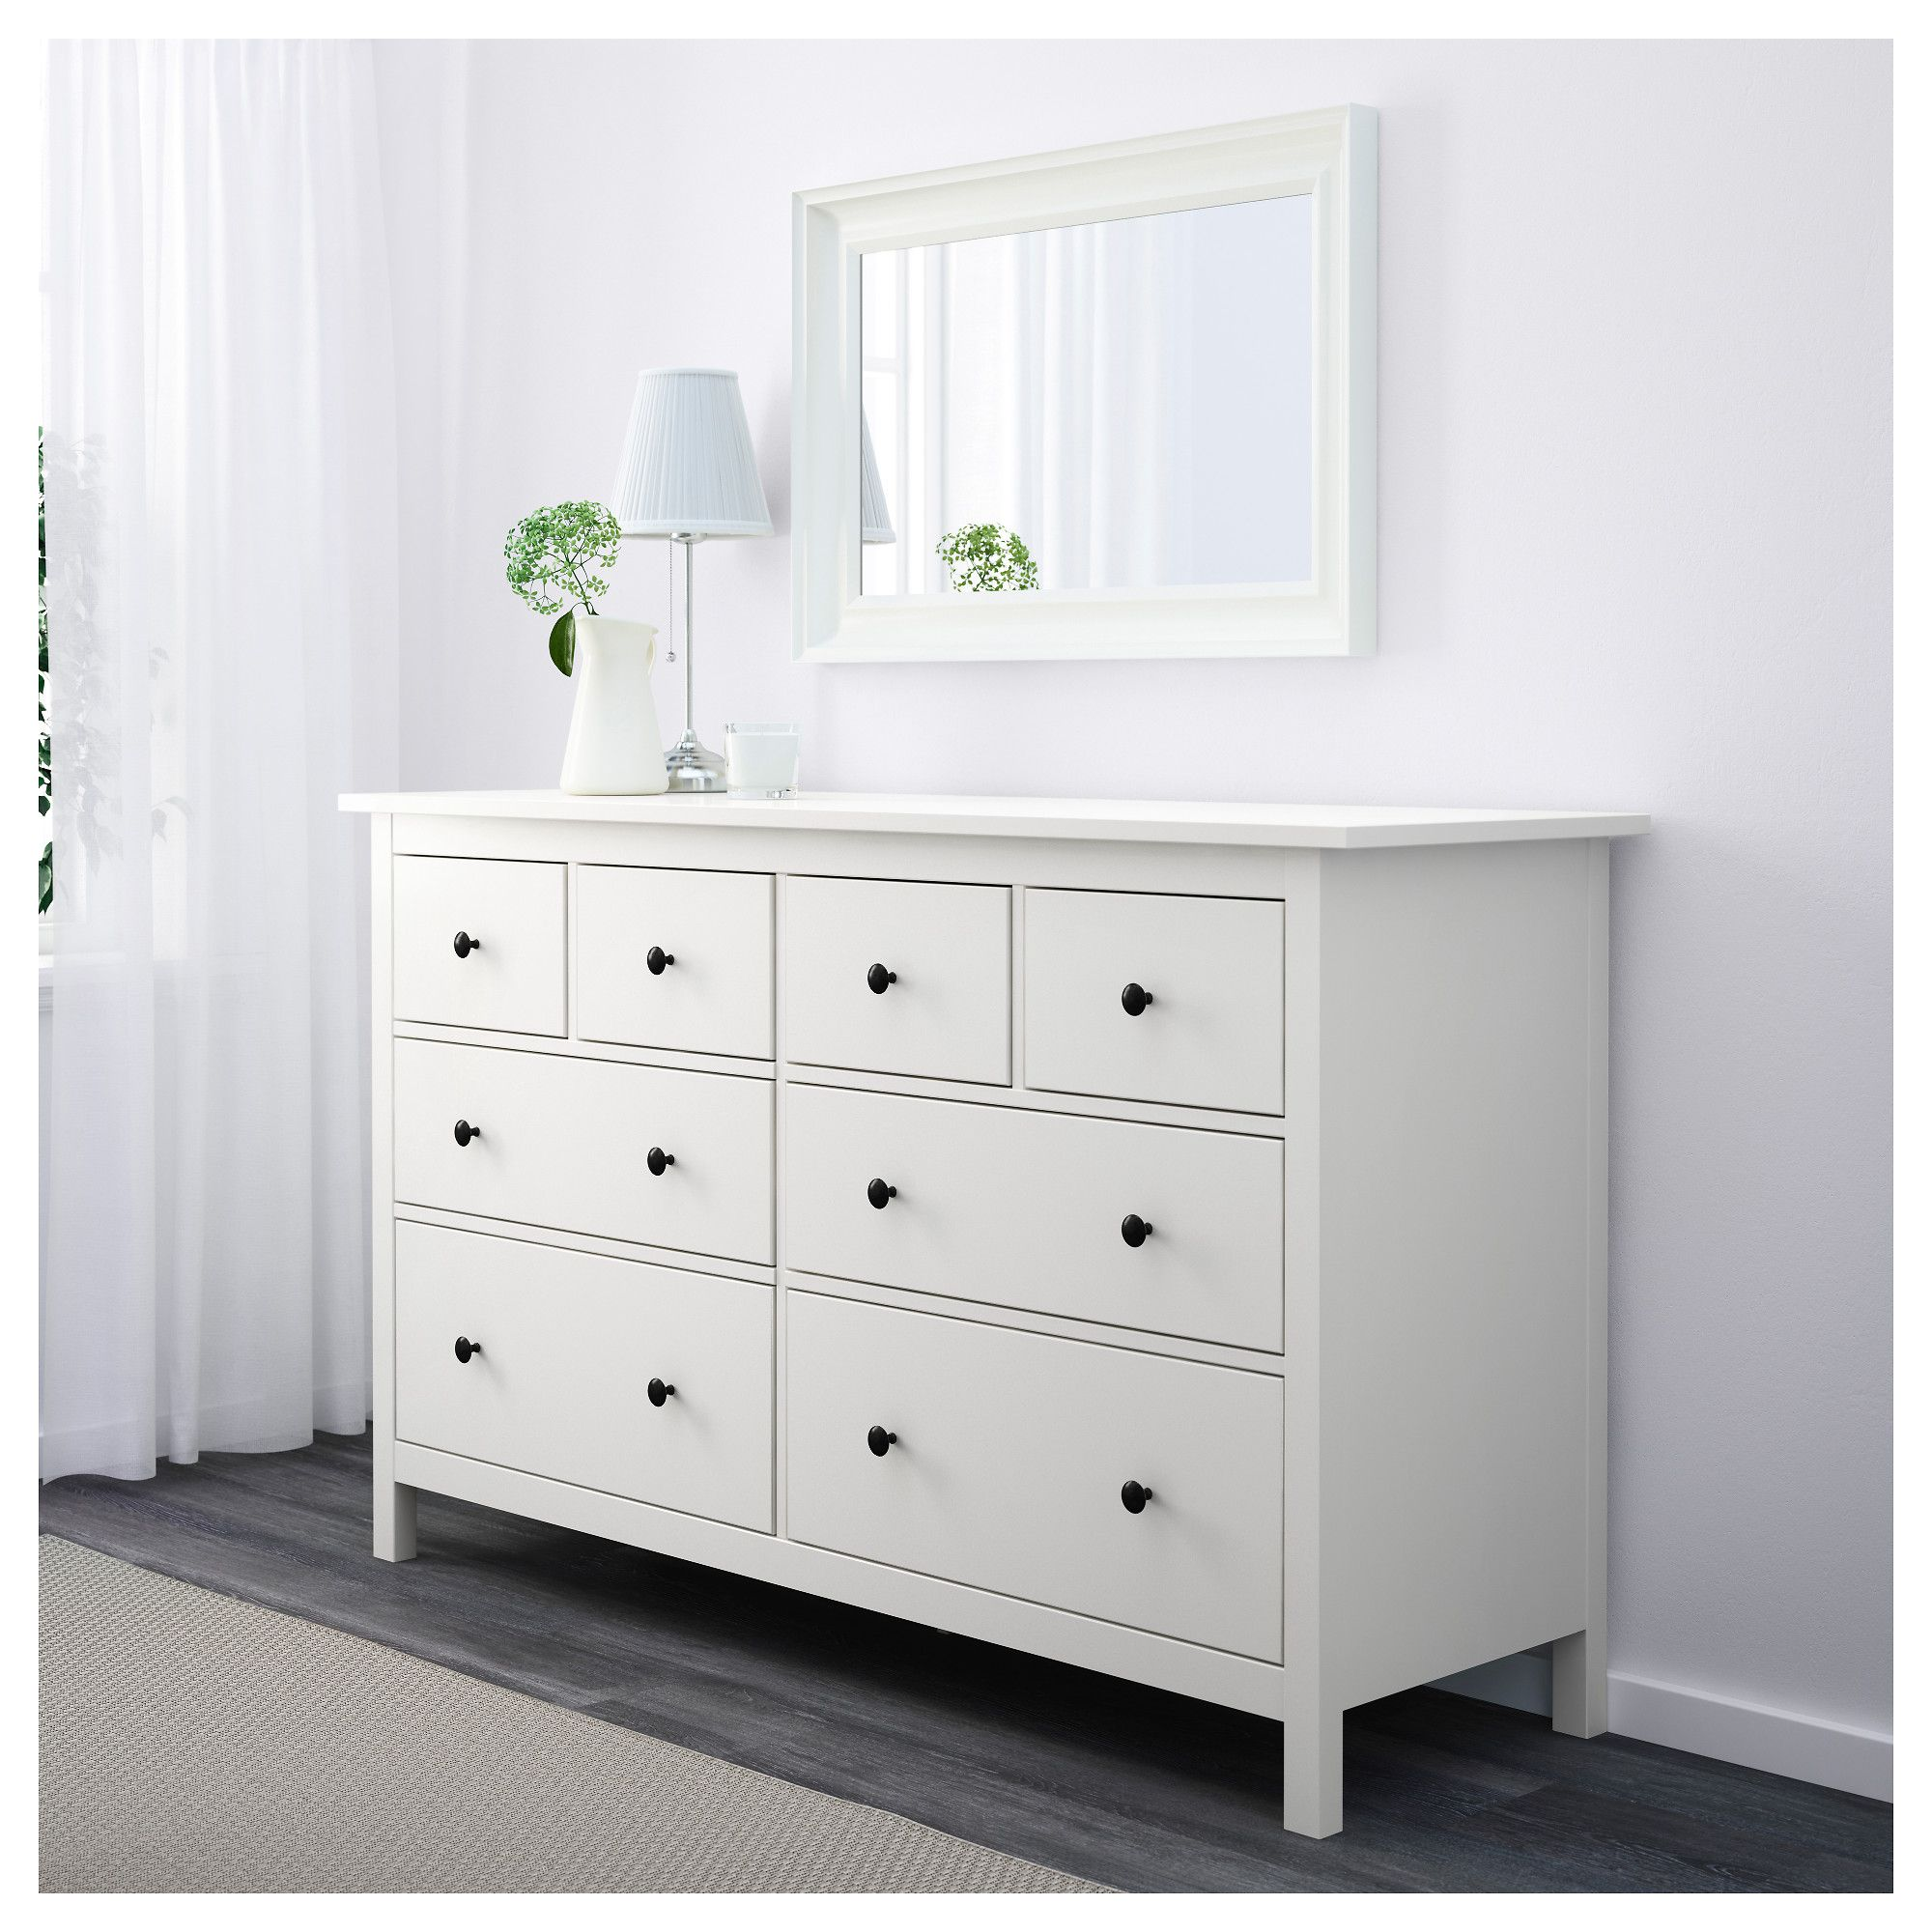 drawer dresser catalog ikea nordli ca anthracite en products